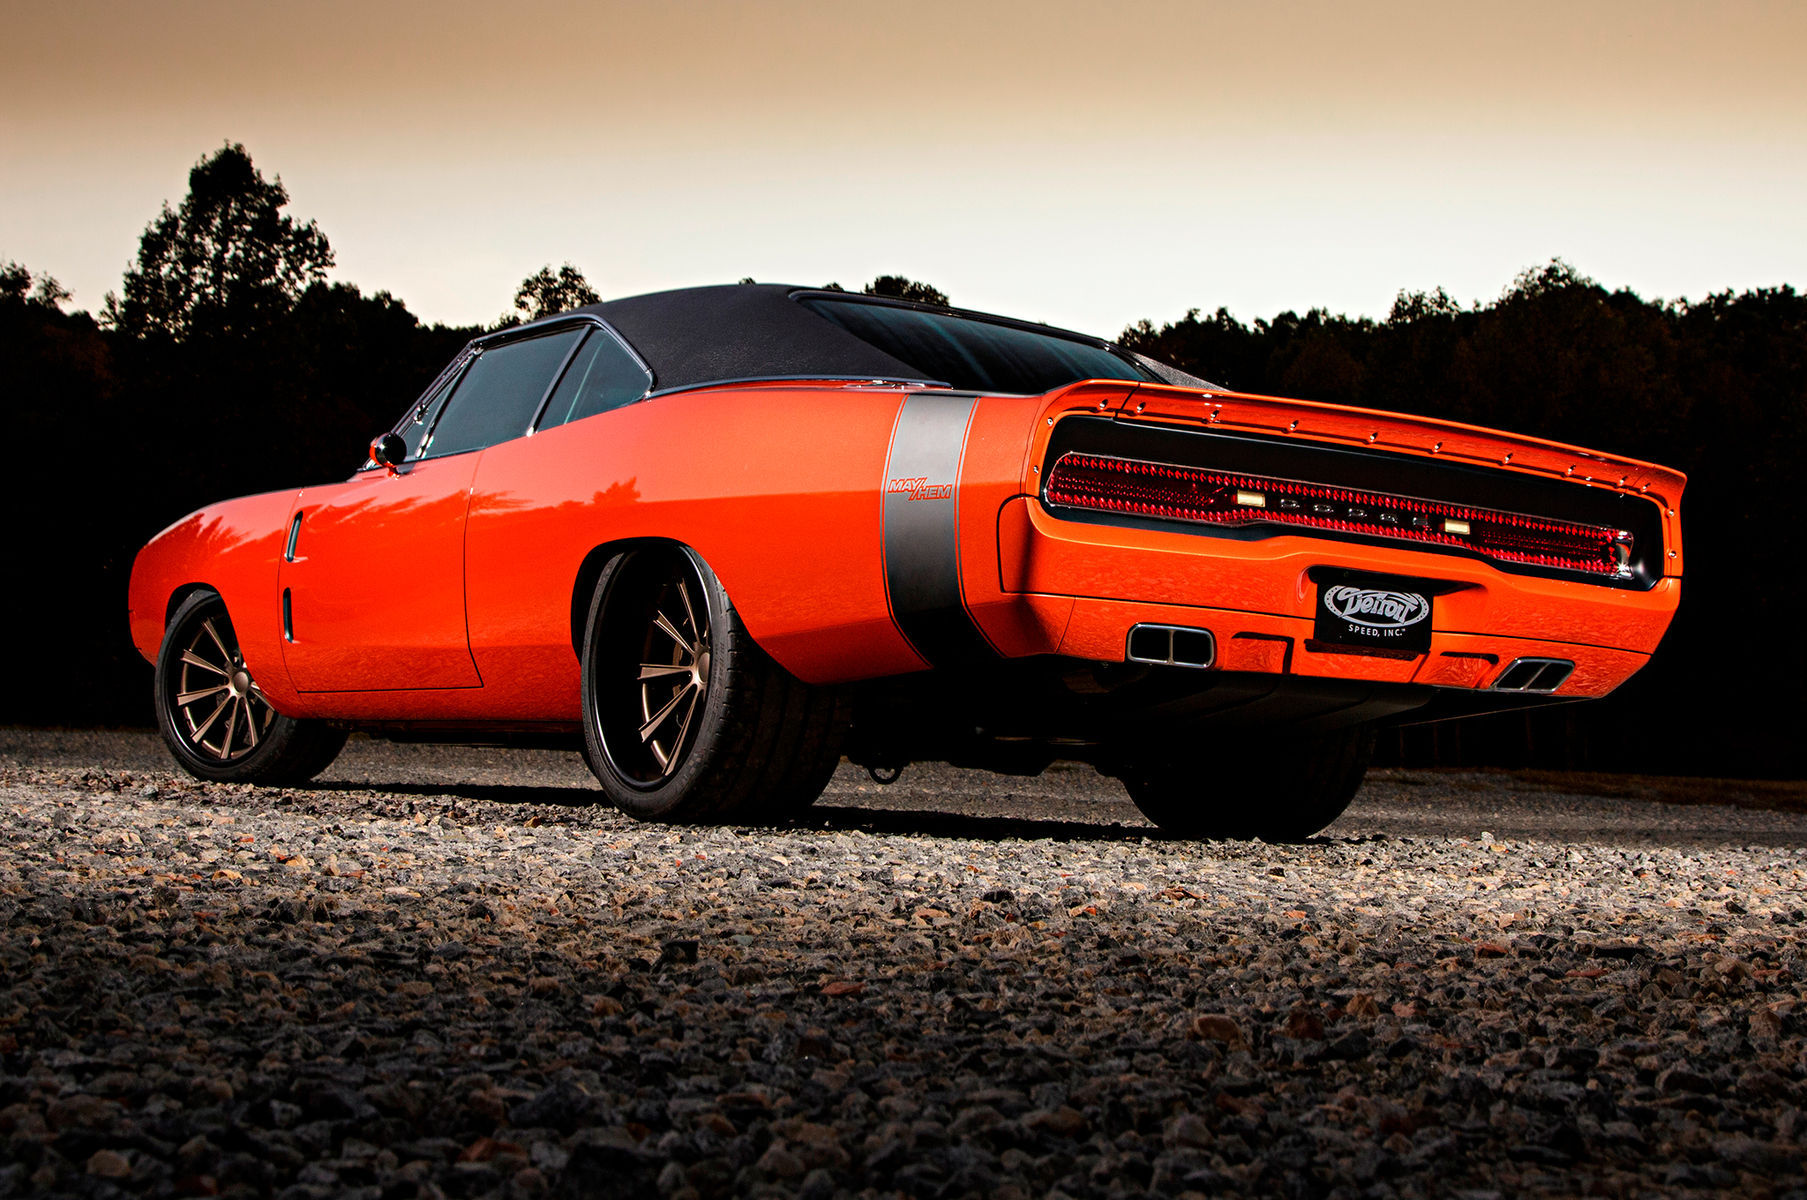 1969 Dodge Charger | Moe's Detroit Speed '69 Dodge Charger on Forgeline Dropkick Wheels